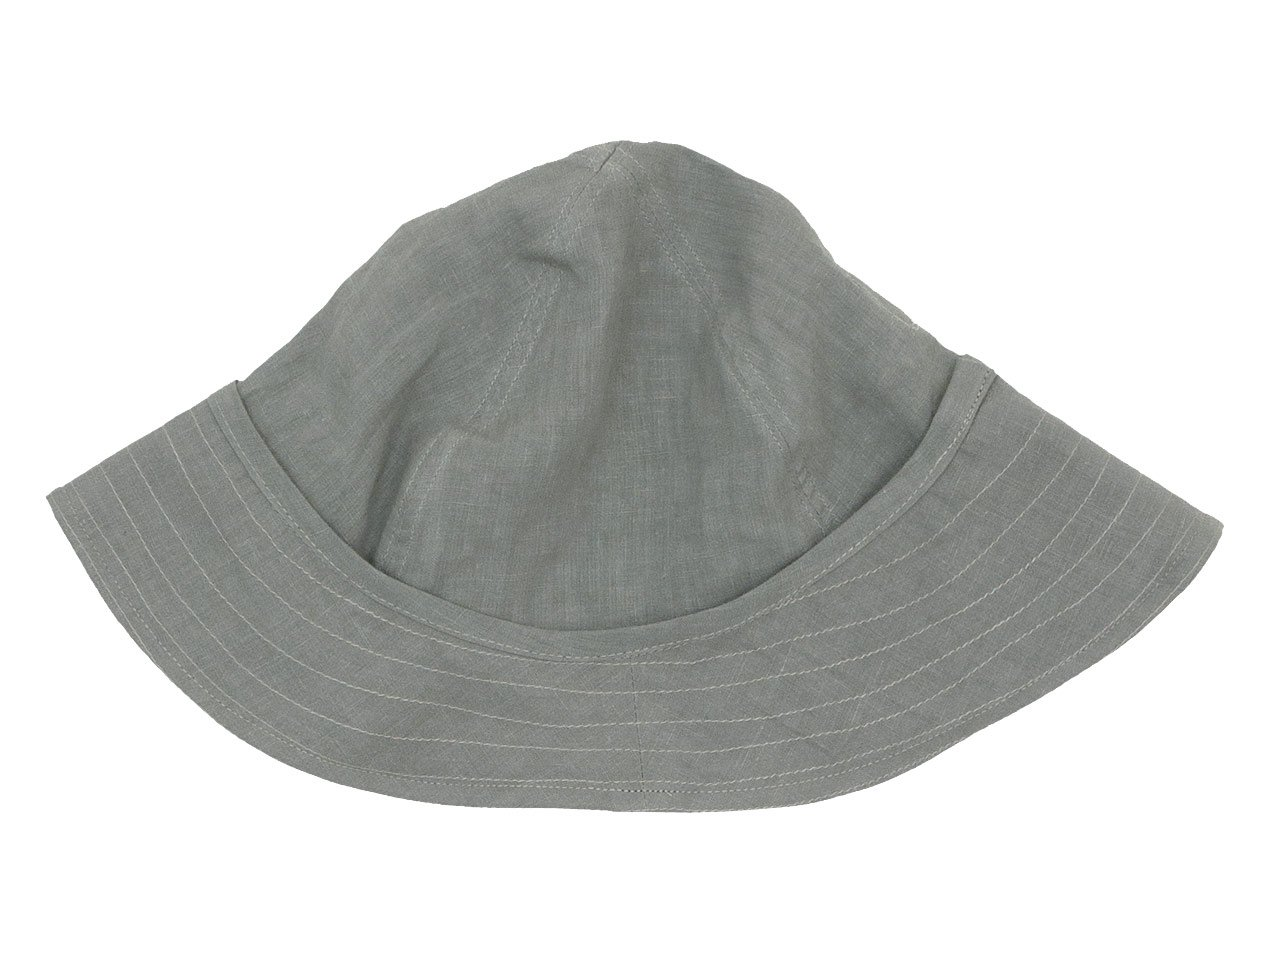 TATAMIZE F HAT GRAY LINEN